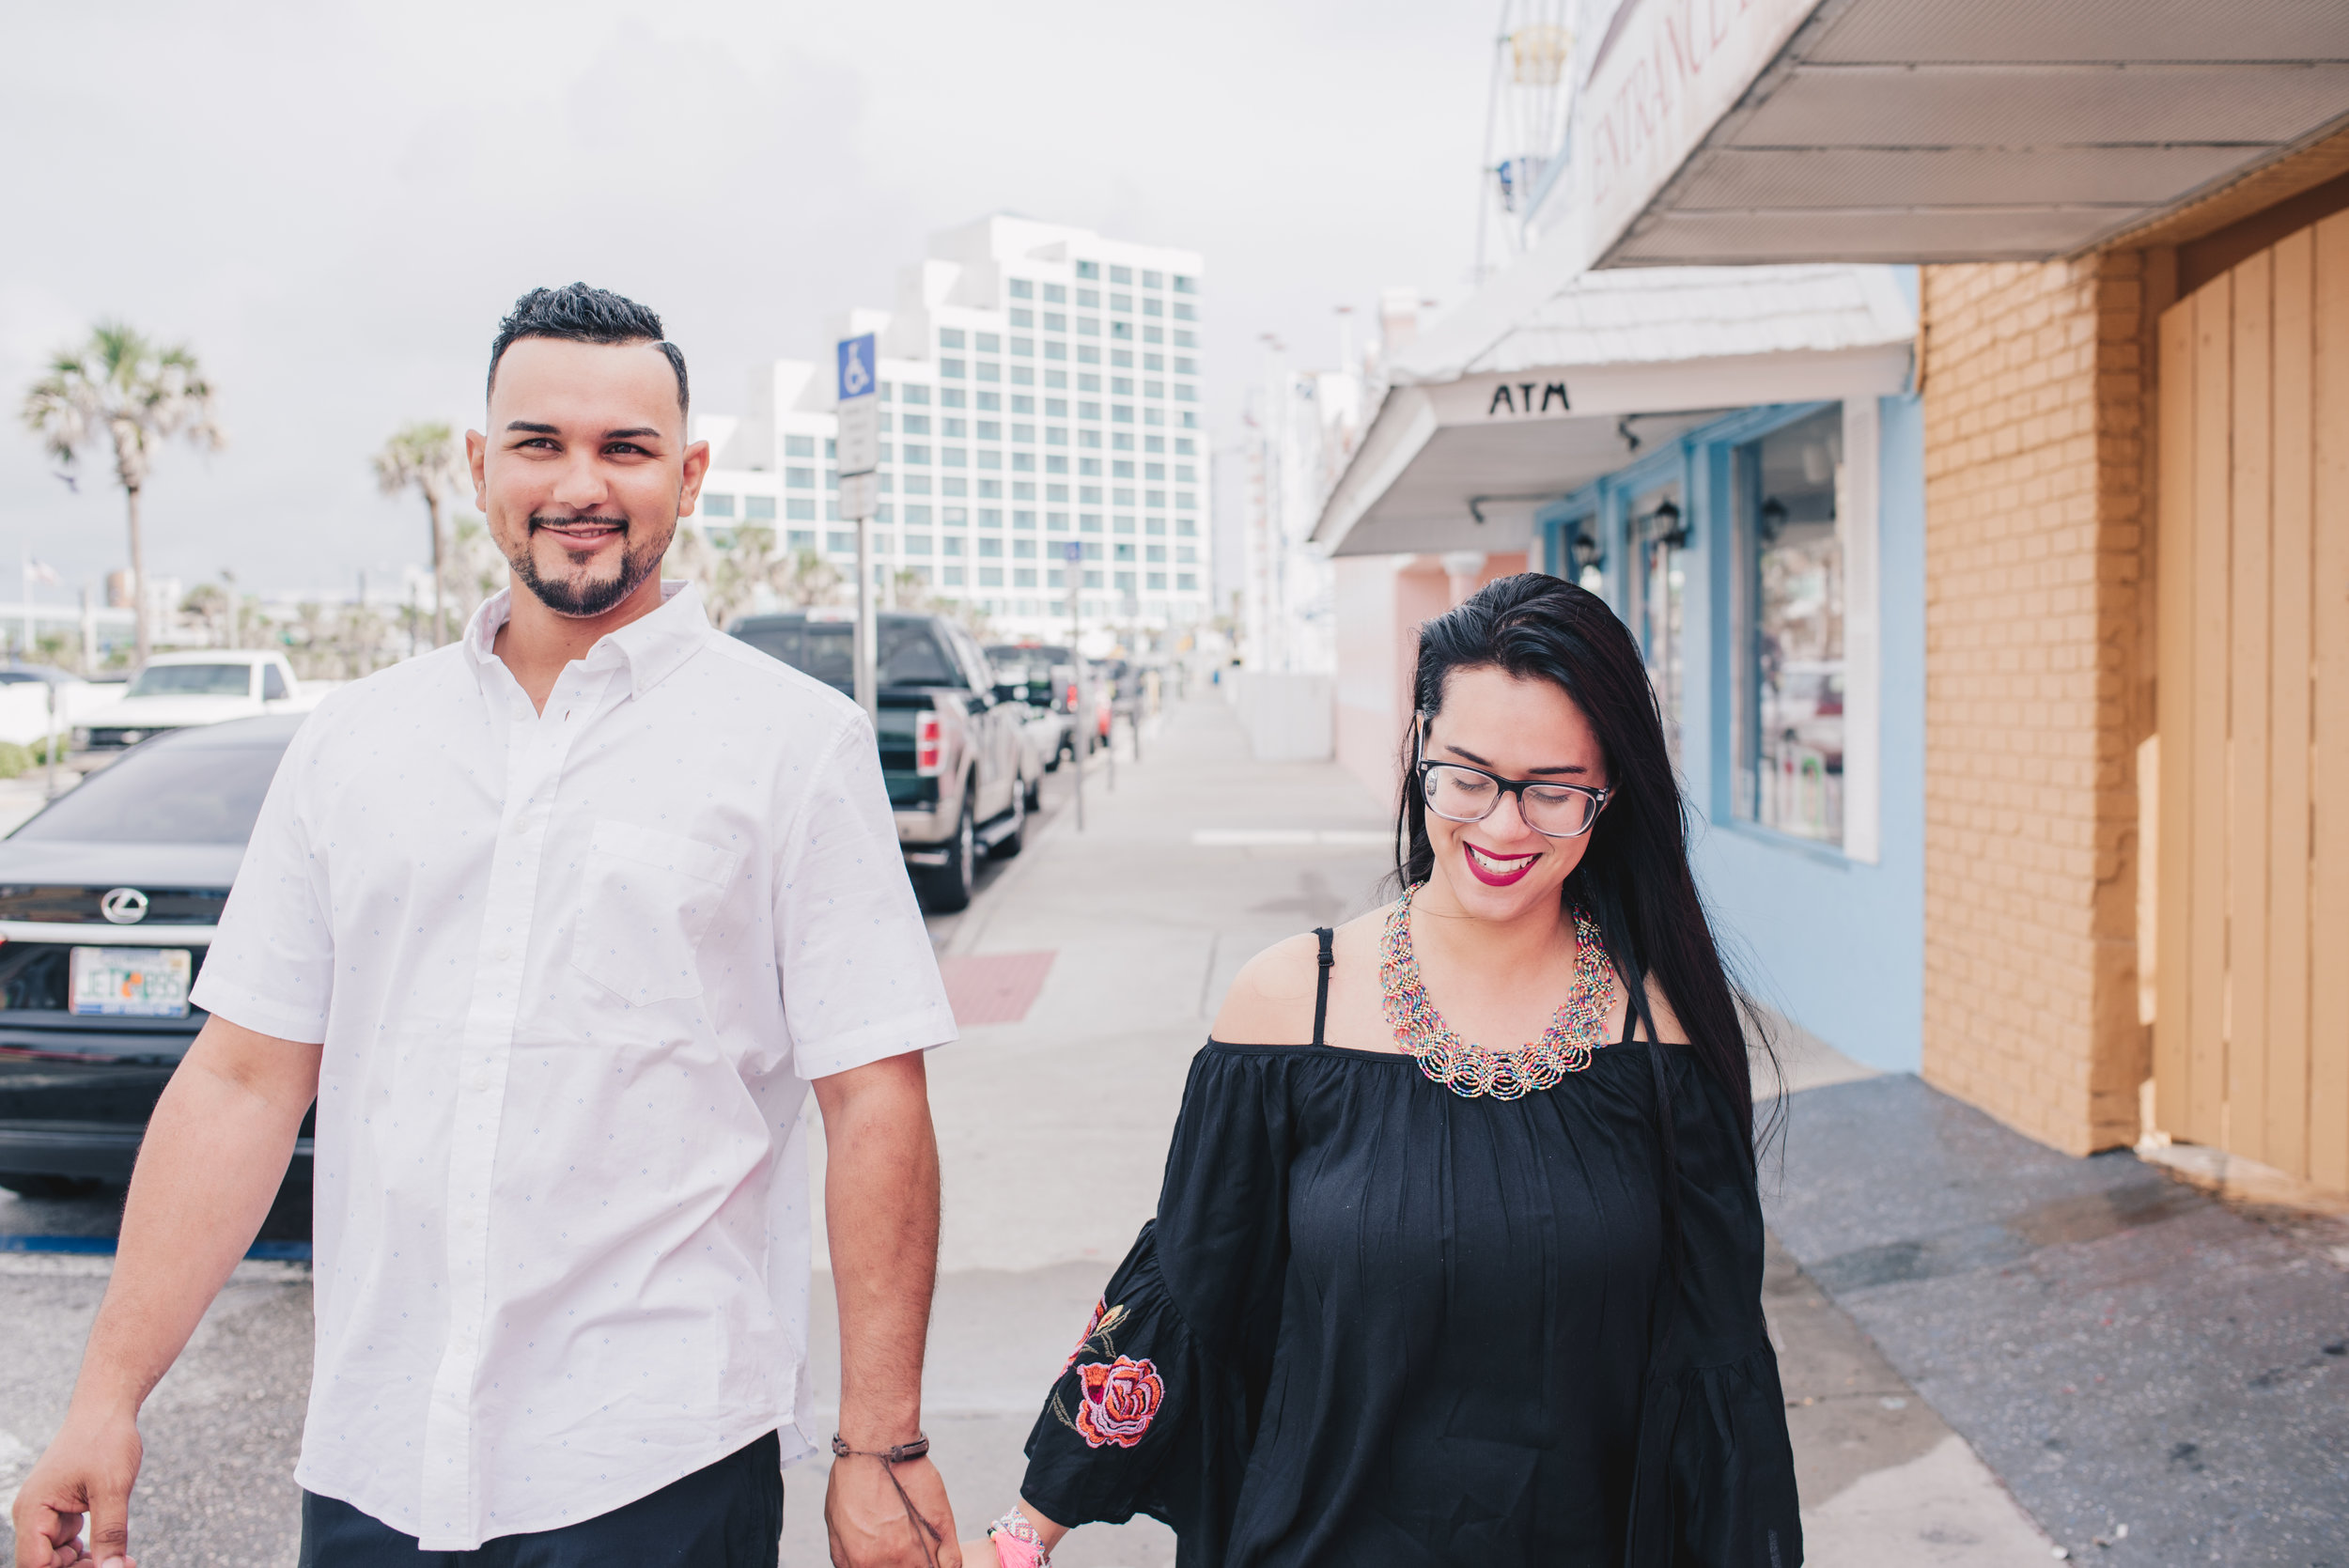 Los-Vargas-Photo-Boardwalk-Summer-Engagement-Session-0445.jpg